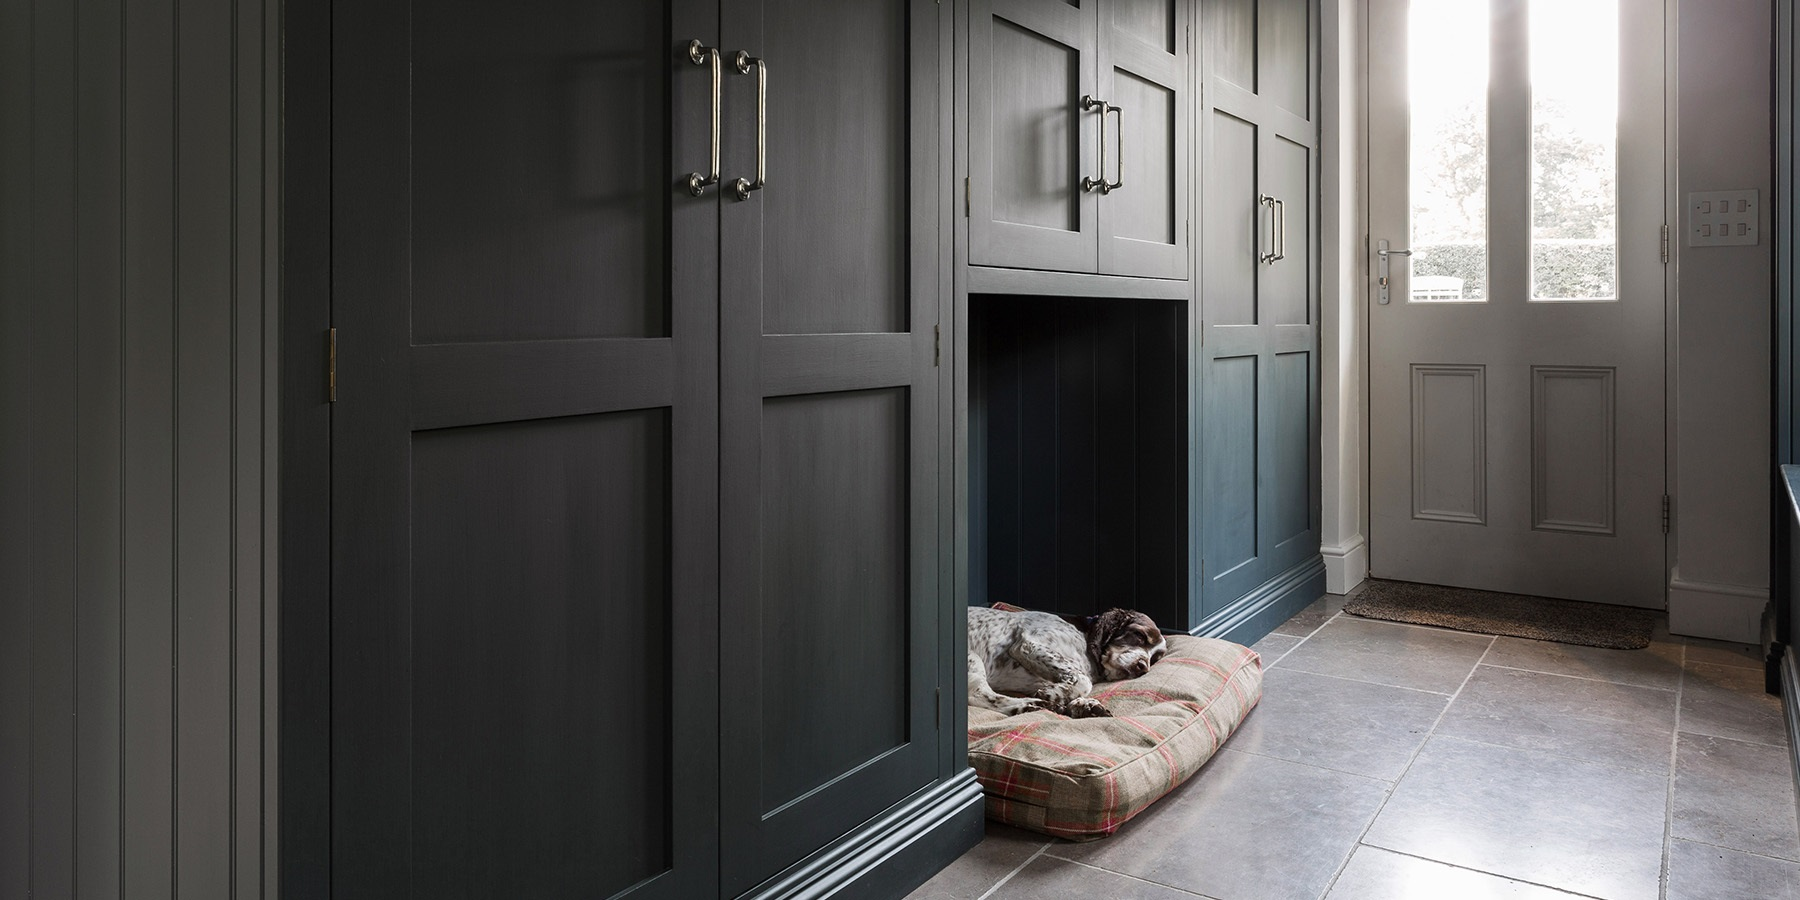 Handmade Bootroom Storage - Handmade floor-to-ceiling bootroom storage solutions, with bespoke dog bed area.